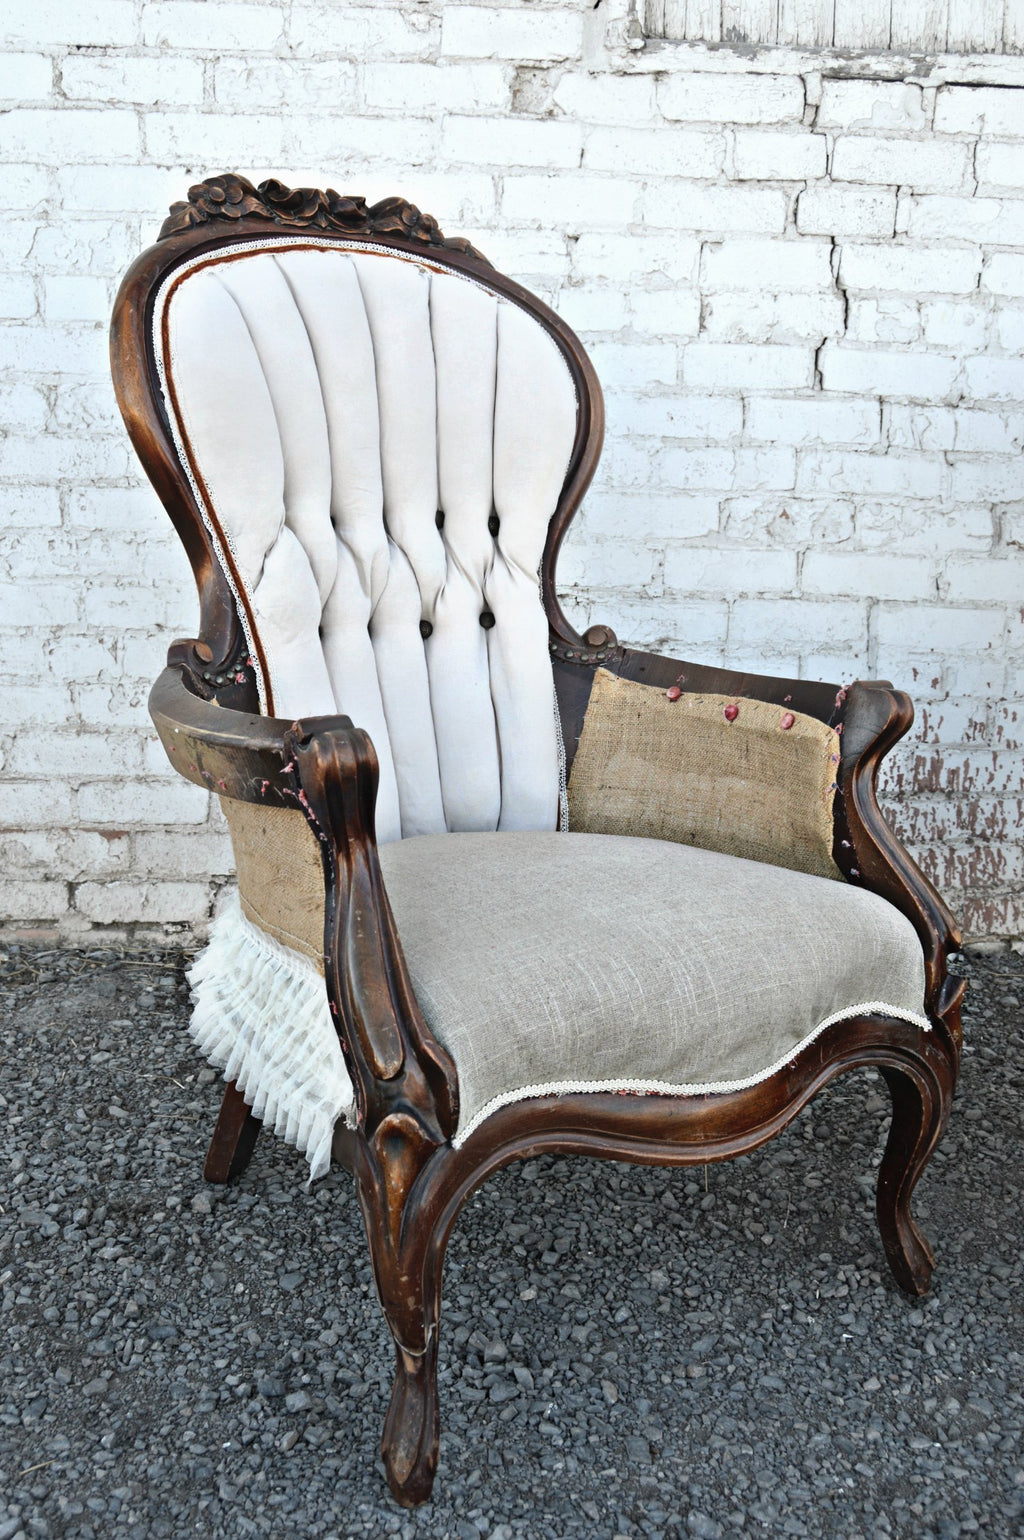 Shabby-chic deconstructed chair